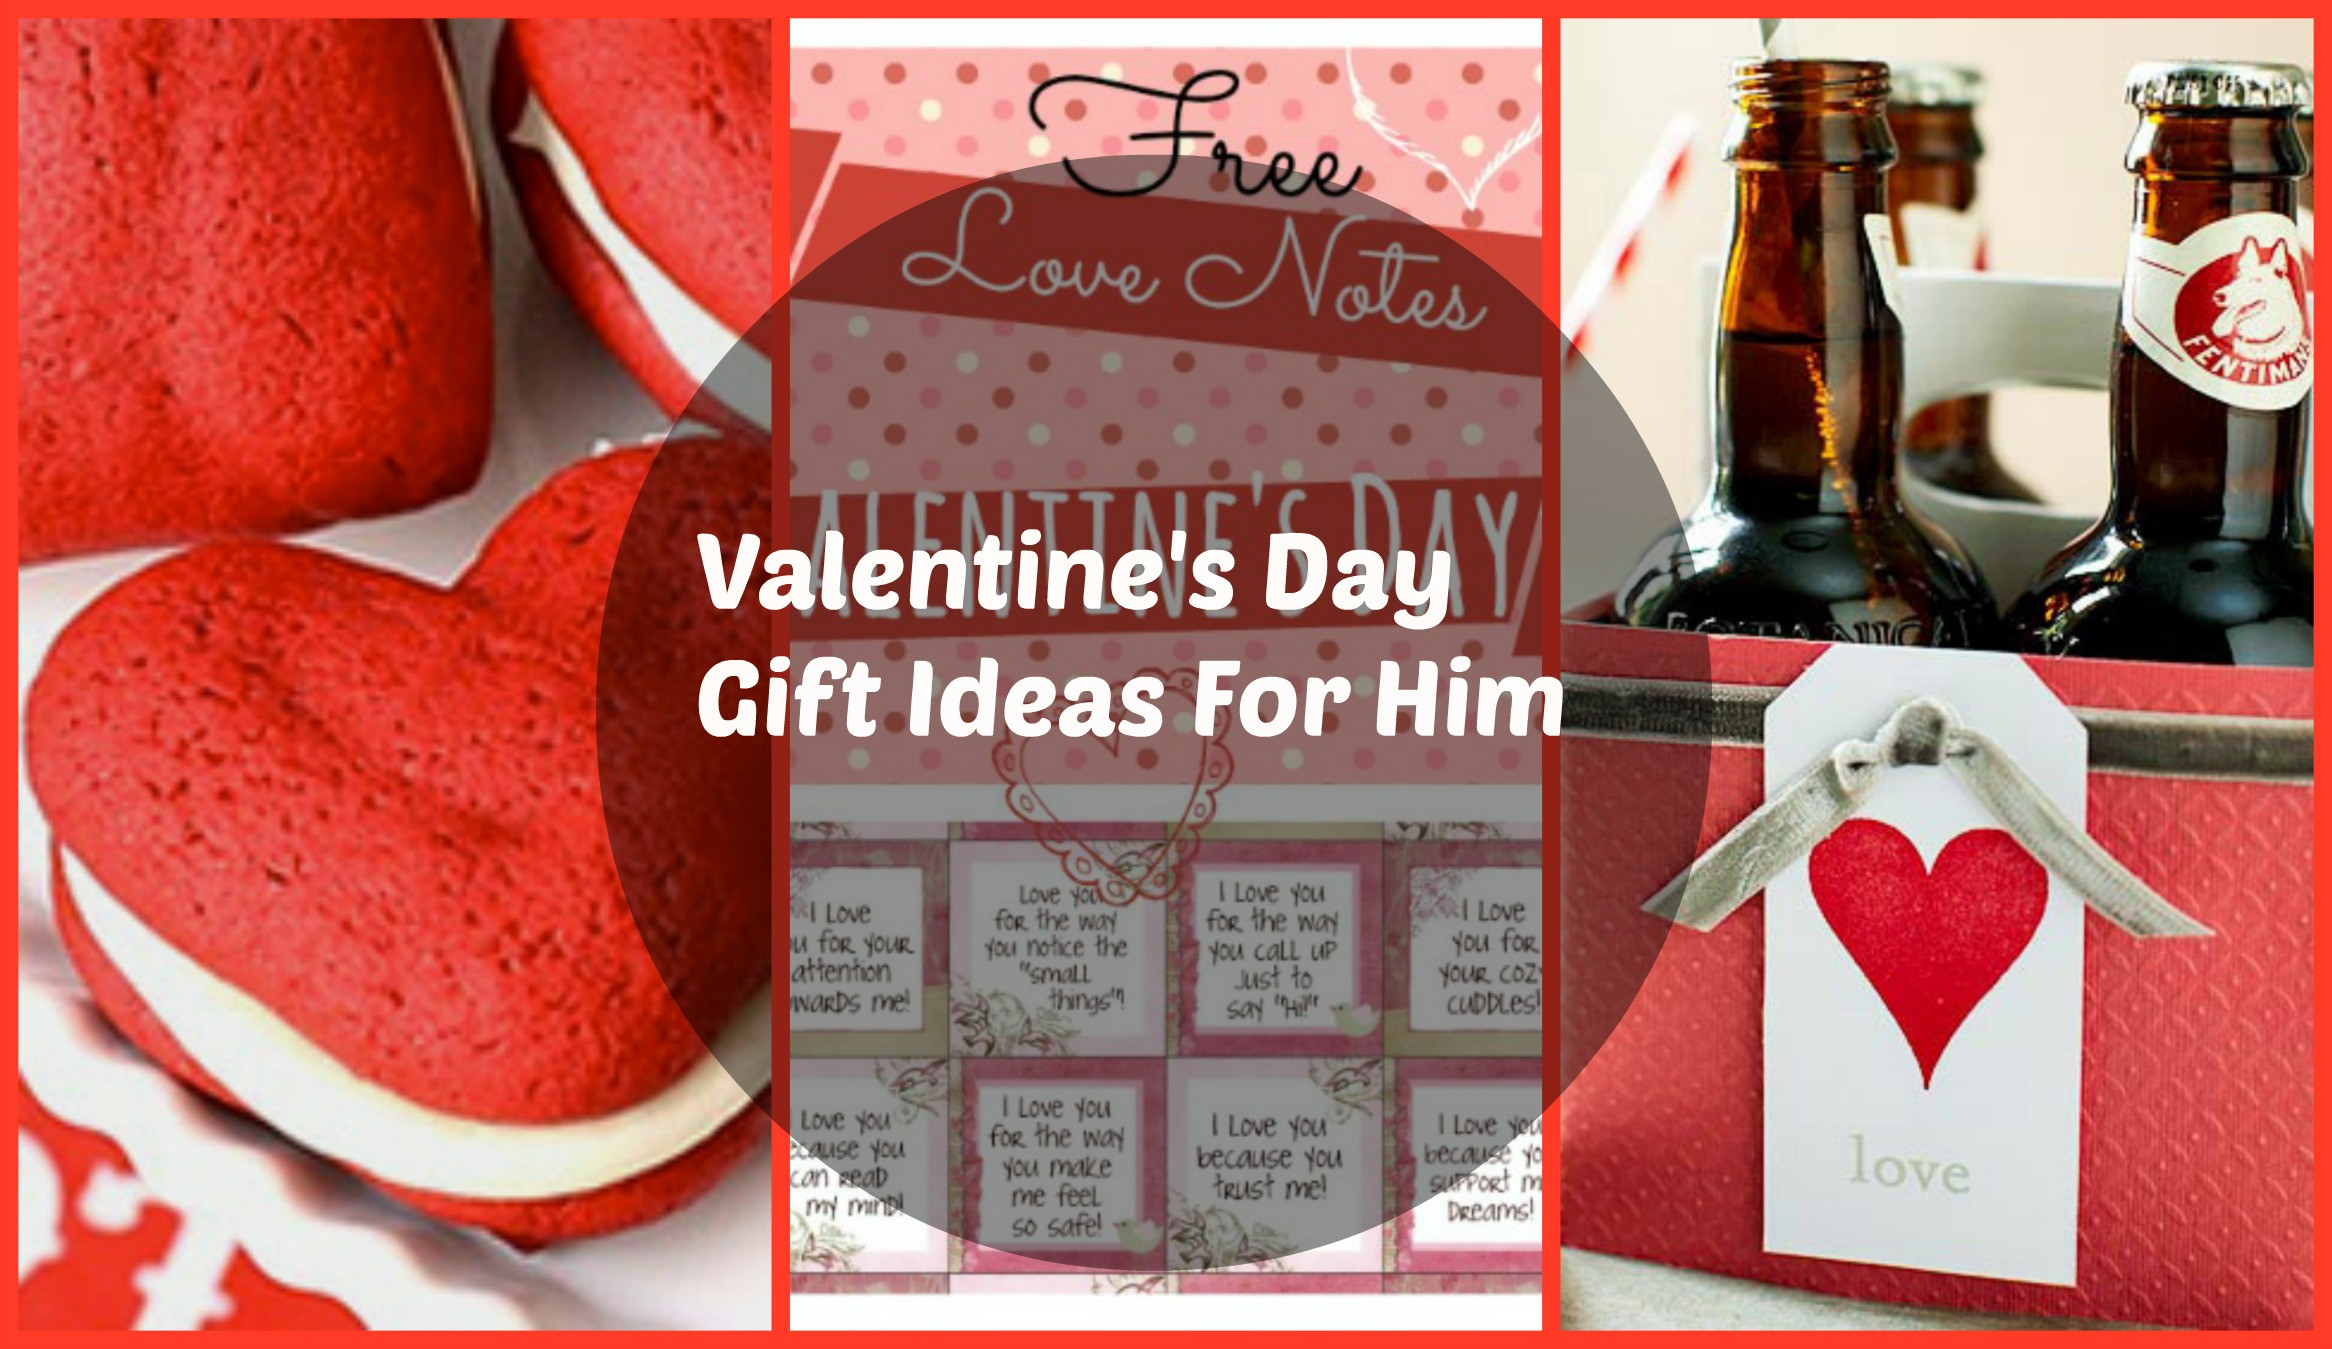 Valentines Gift Ideas For Him  Valentine s Gift Ideas for Him Archives Fashion Trend Seeker